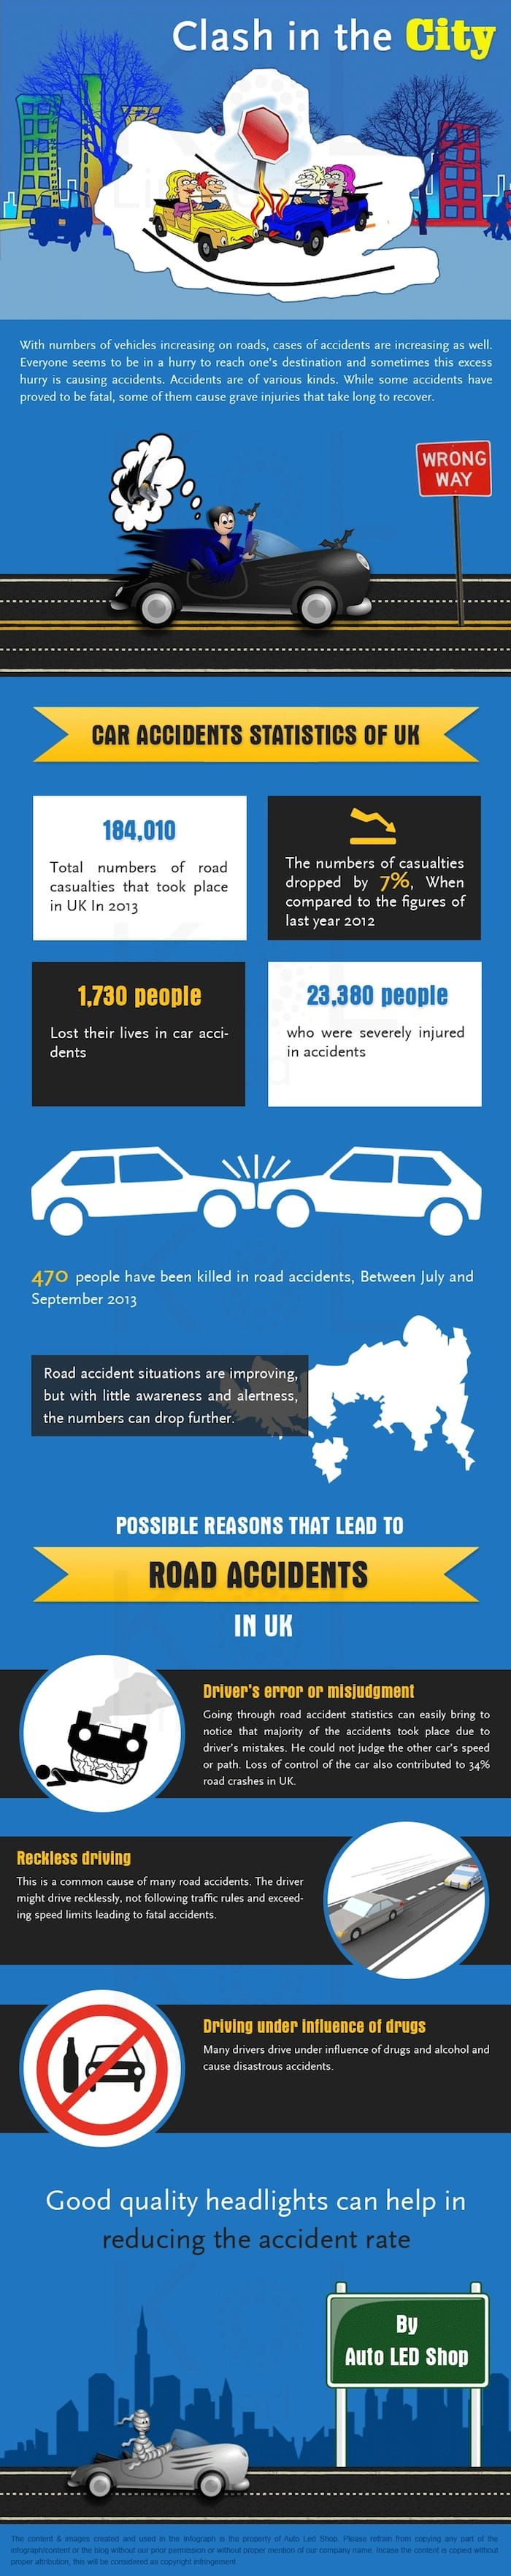 UK car accident facts and figures